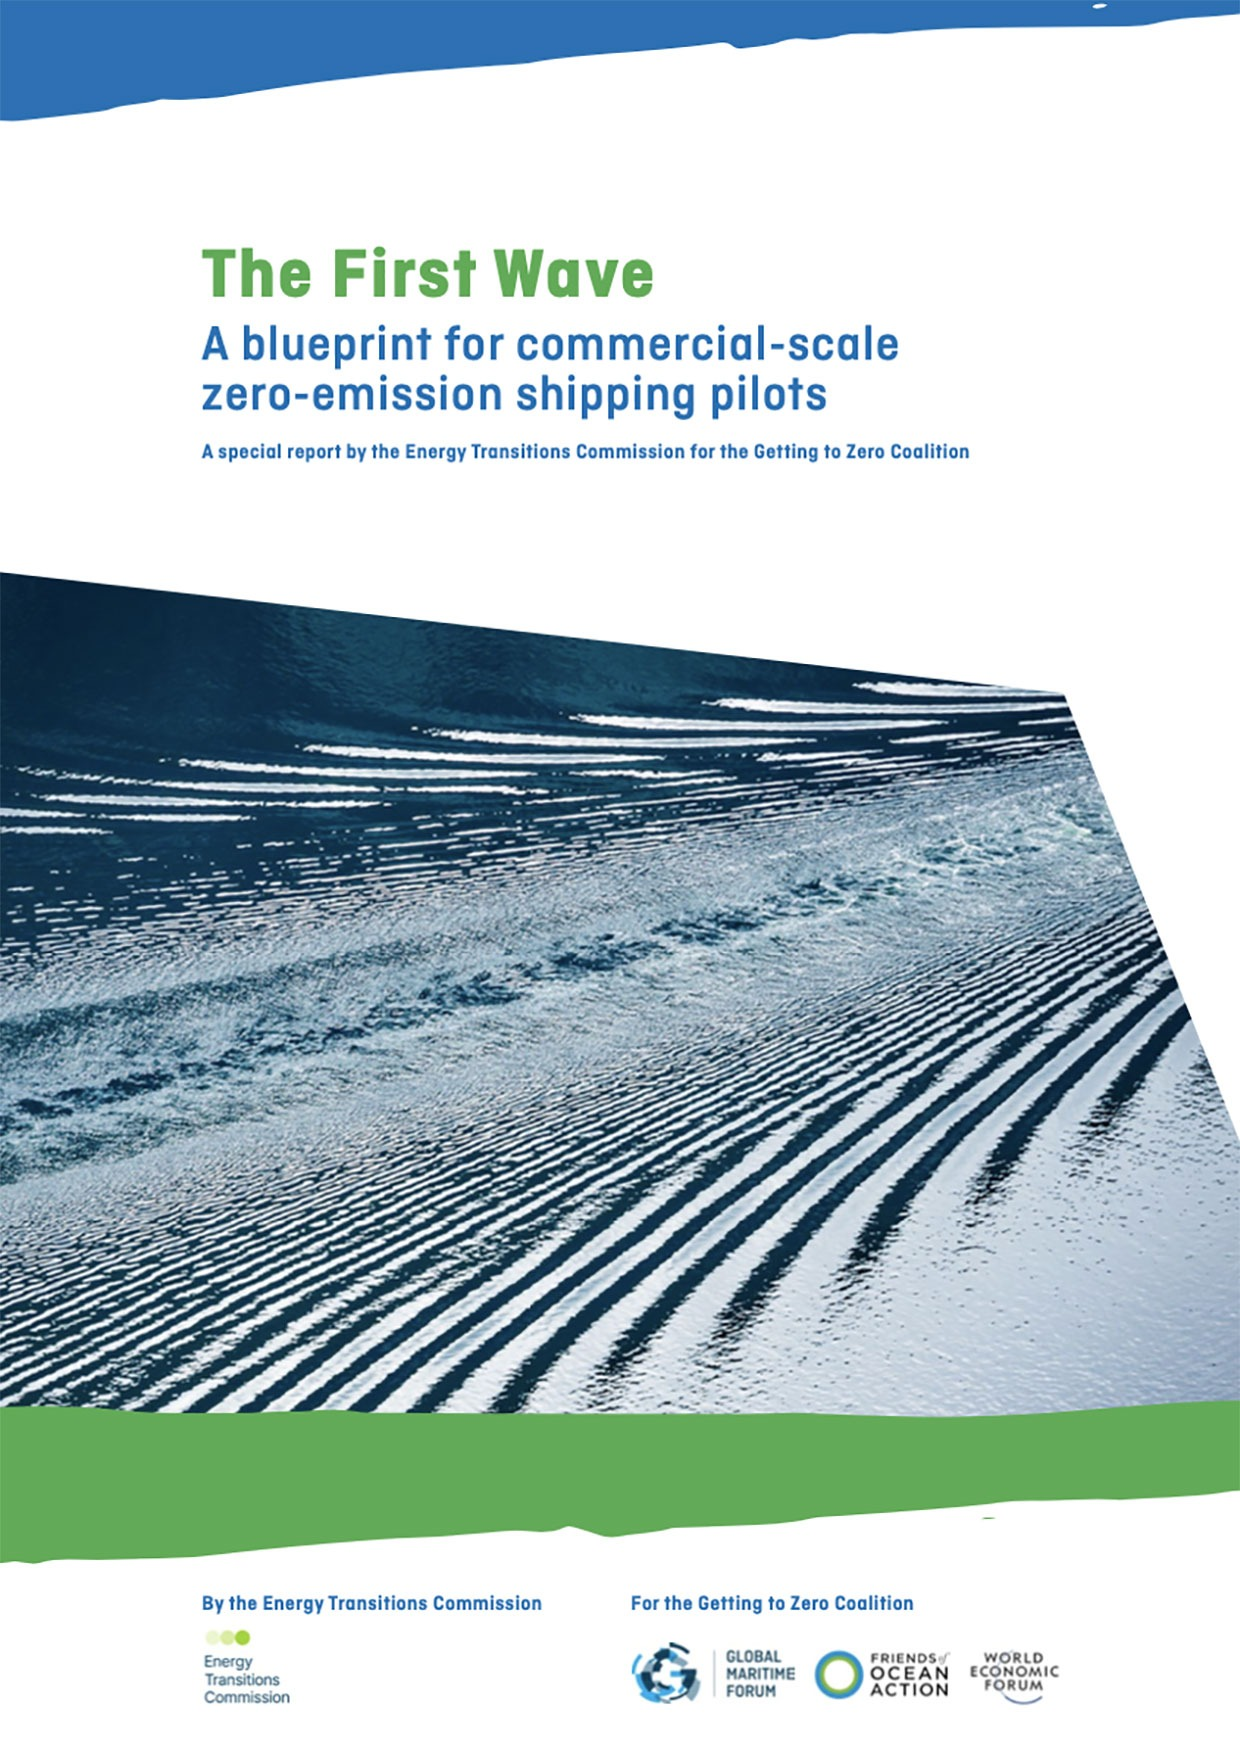 The First Wave – A blueprint for commercial-scale zero-emission shipping pilots